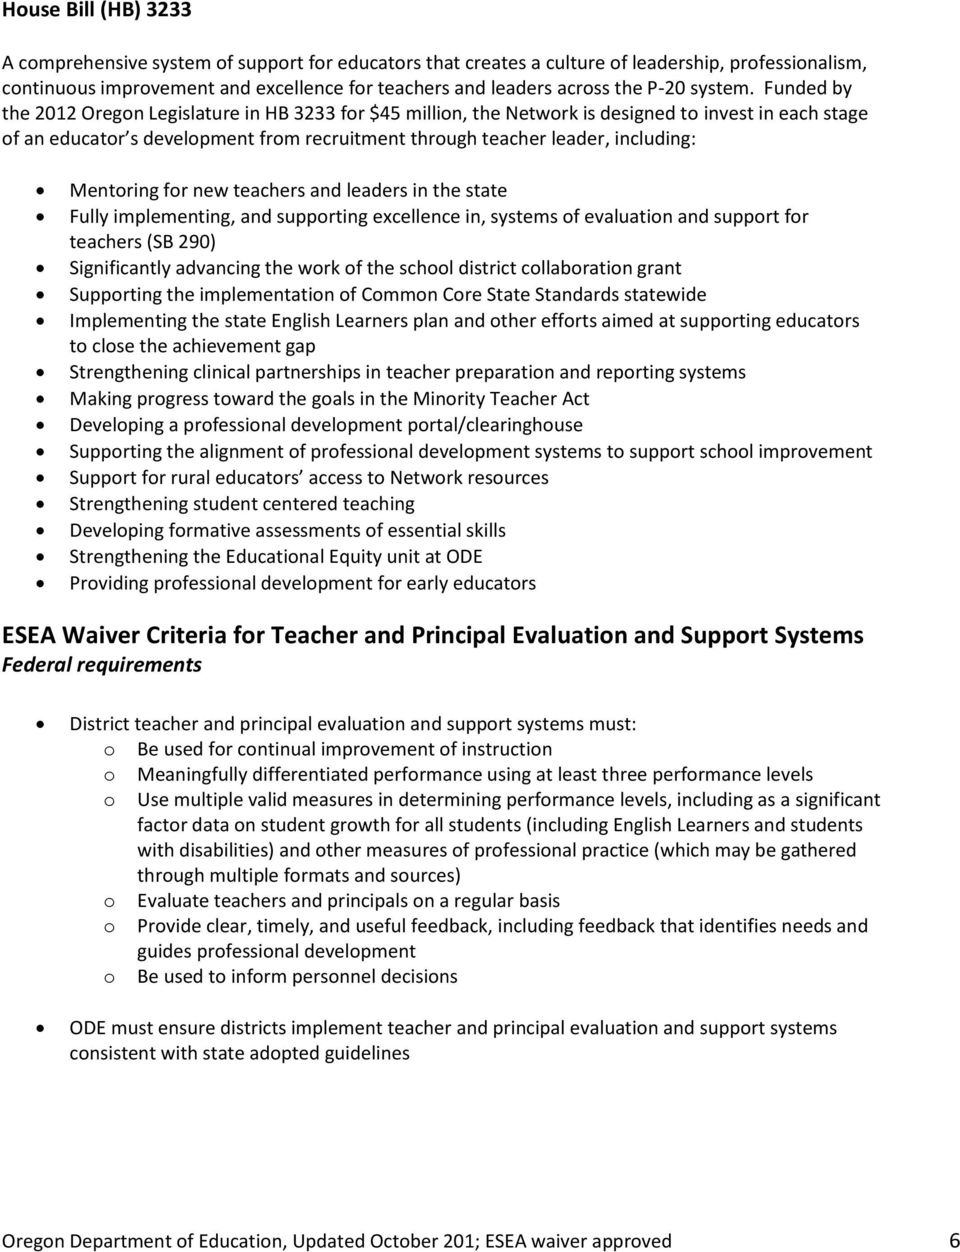 Funded by the 2012 Oregon Legislature in HB 3233 for $45 million, the Network is designed to invest in each stage of an educator s development from recruitment through teacher leader, including: